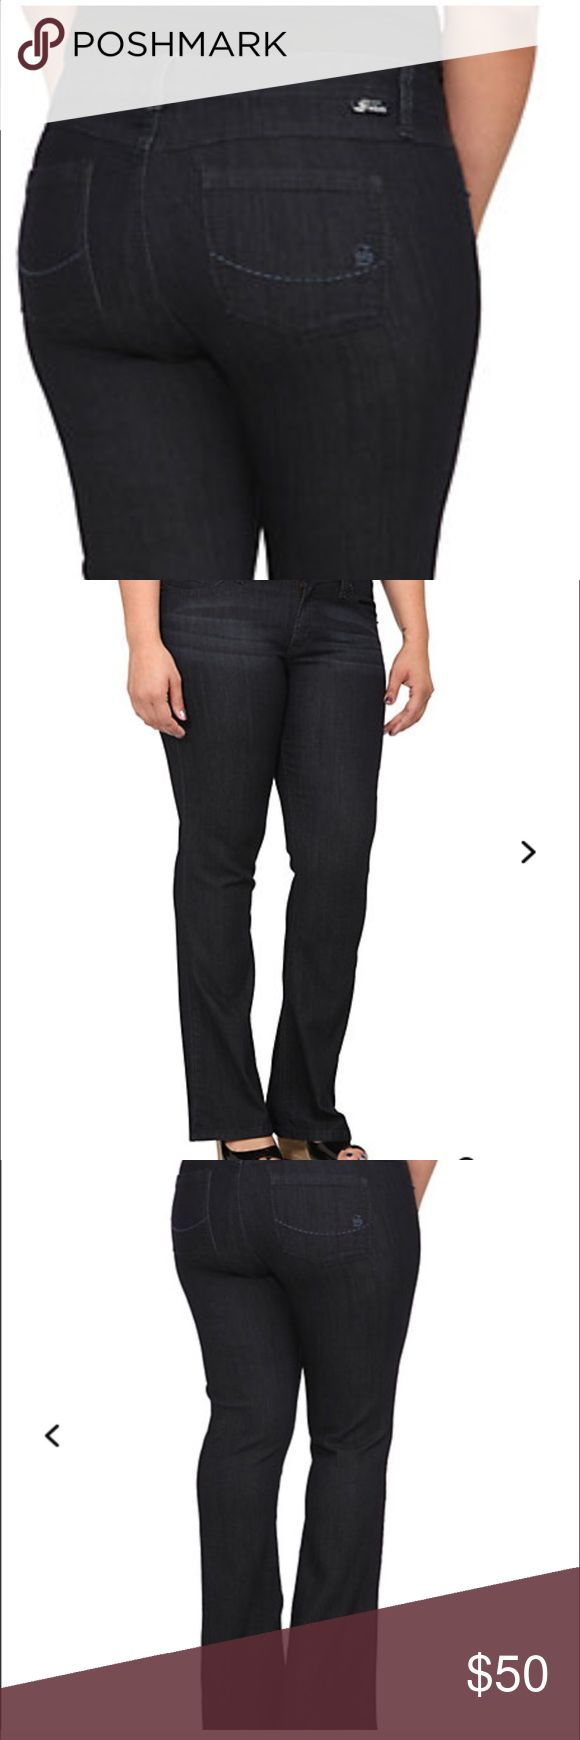 """Torrid slim bootcut virtual stretch New with tags. A skinny fit through the hip and thigh breaks into a slim boot at the knee for long, lean lines. These flattering jeans are perfect over boots (of course), but also look exquisite dressed up with pumps and a blazer. Mid-rise. Tall length. Dark rinse. Stretchy. Source of wisdom edition. 35"""" inseam torrid Jeans Boot Cut"""